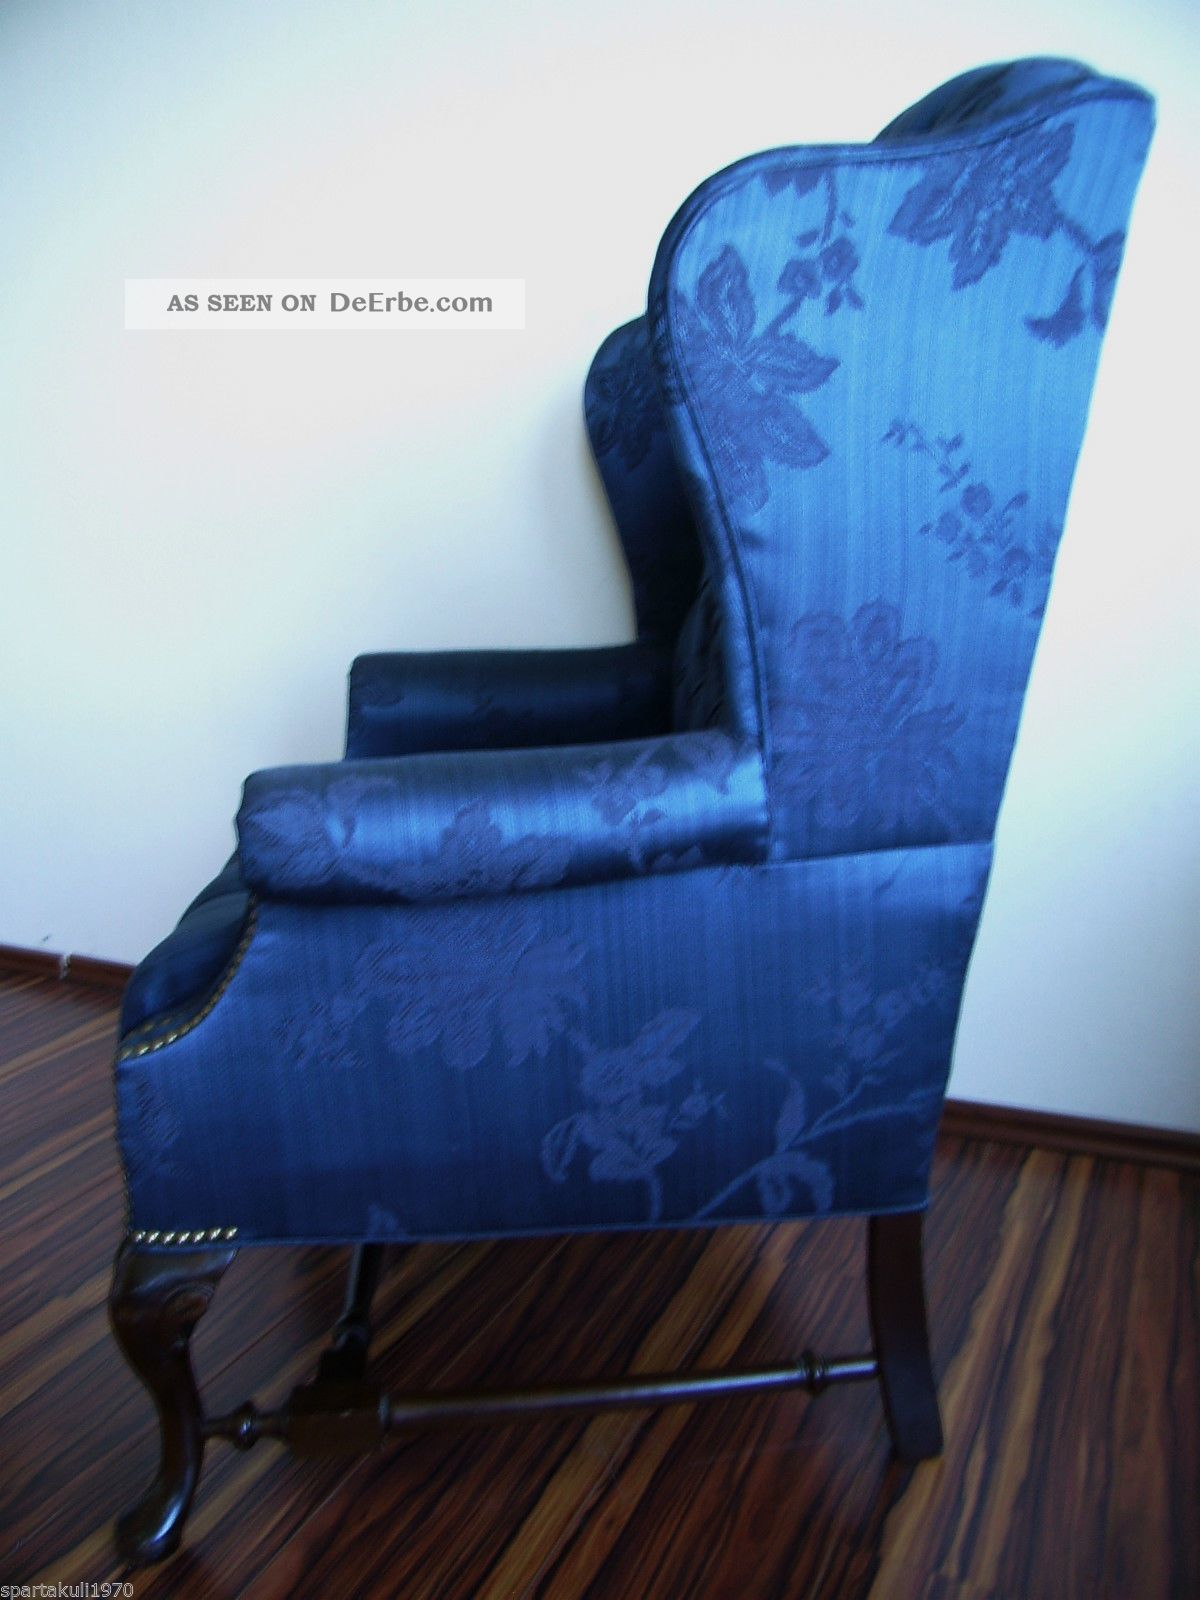 Chesterfield Sessel Samt Anna Chesterfield Sofa Blau Edles Sofa Chesterfield 200cm Blau